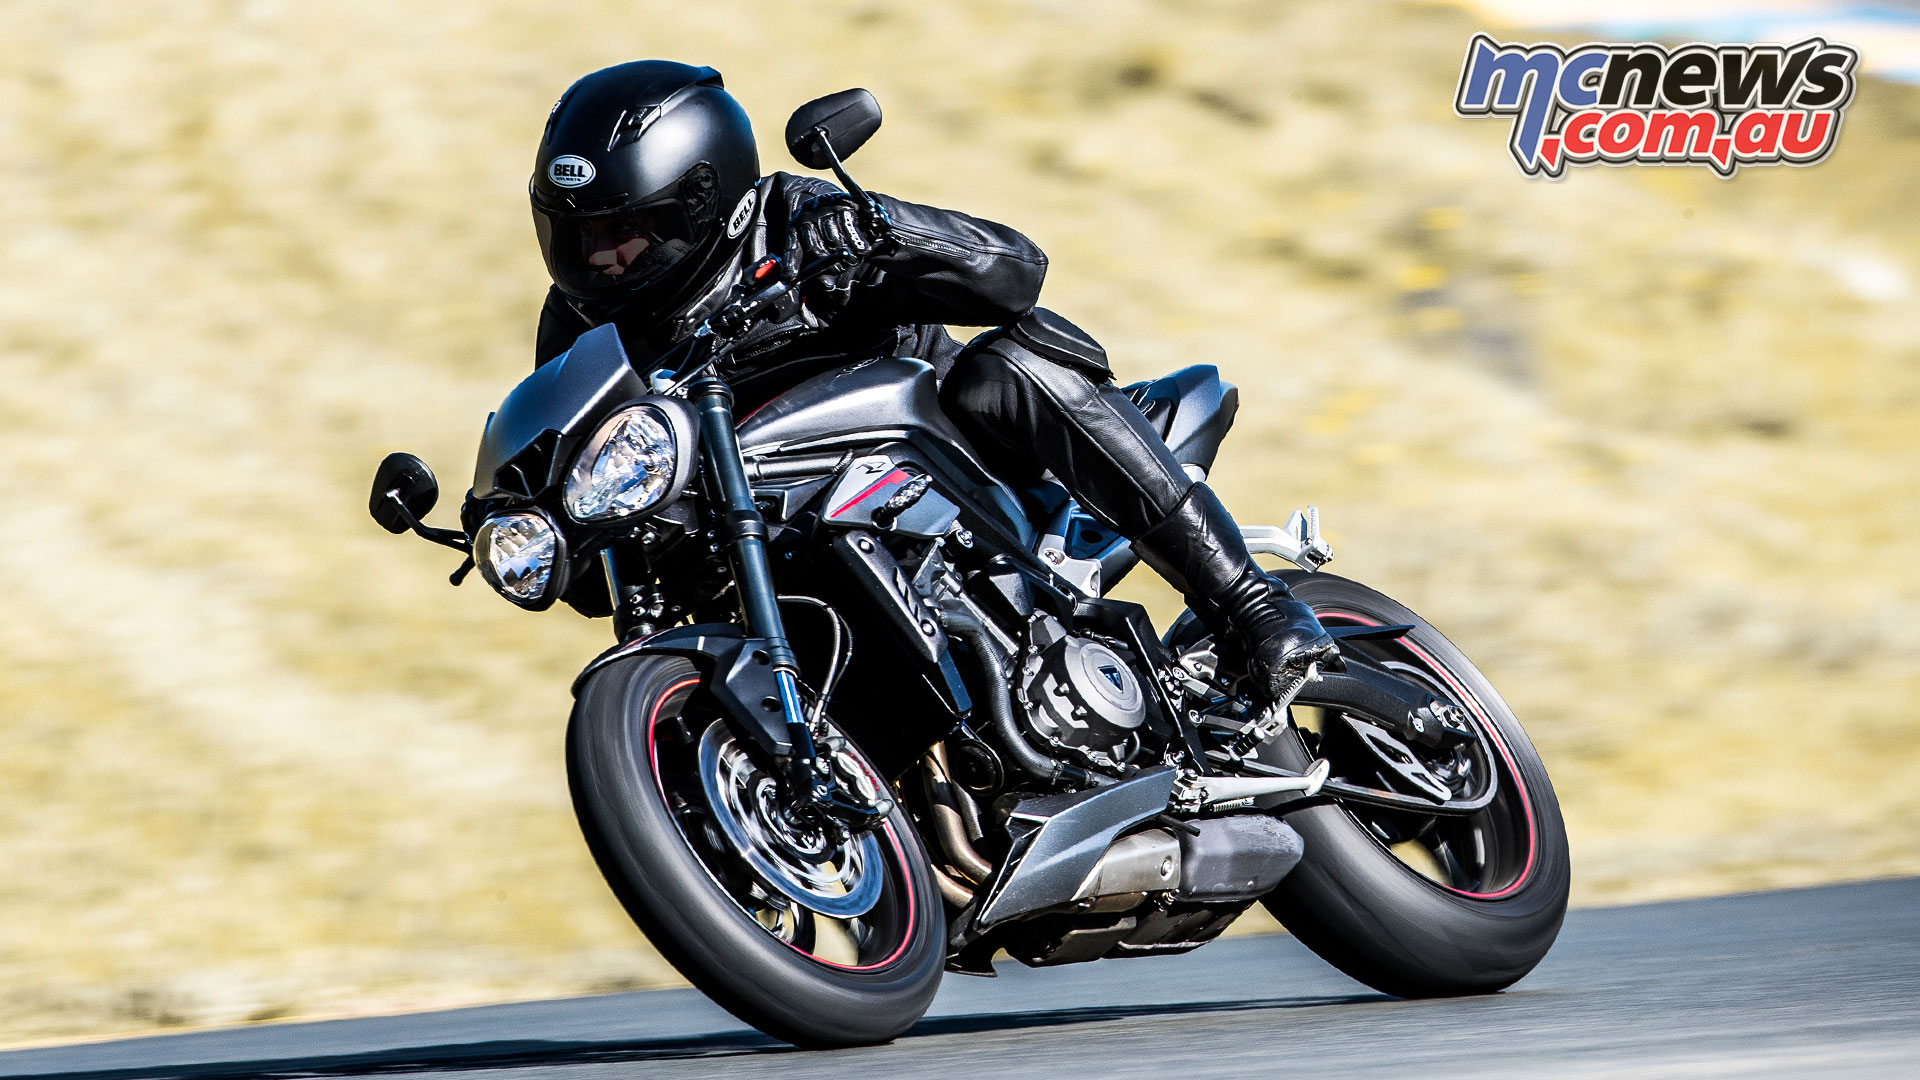 Triumph Street Triple 765 Rs Review 121hp Ohlins Mcnewscomau